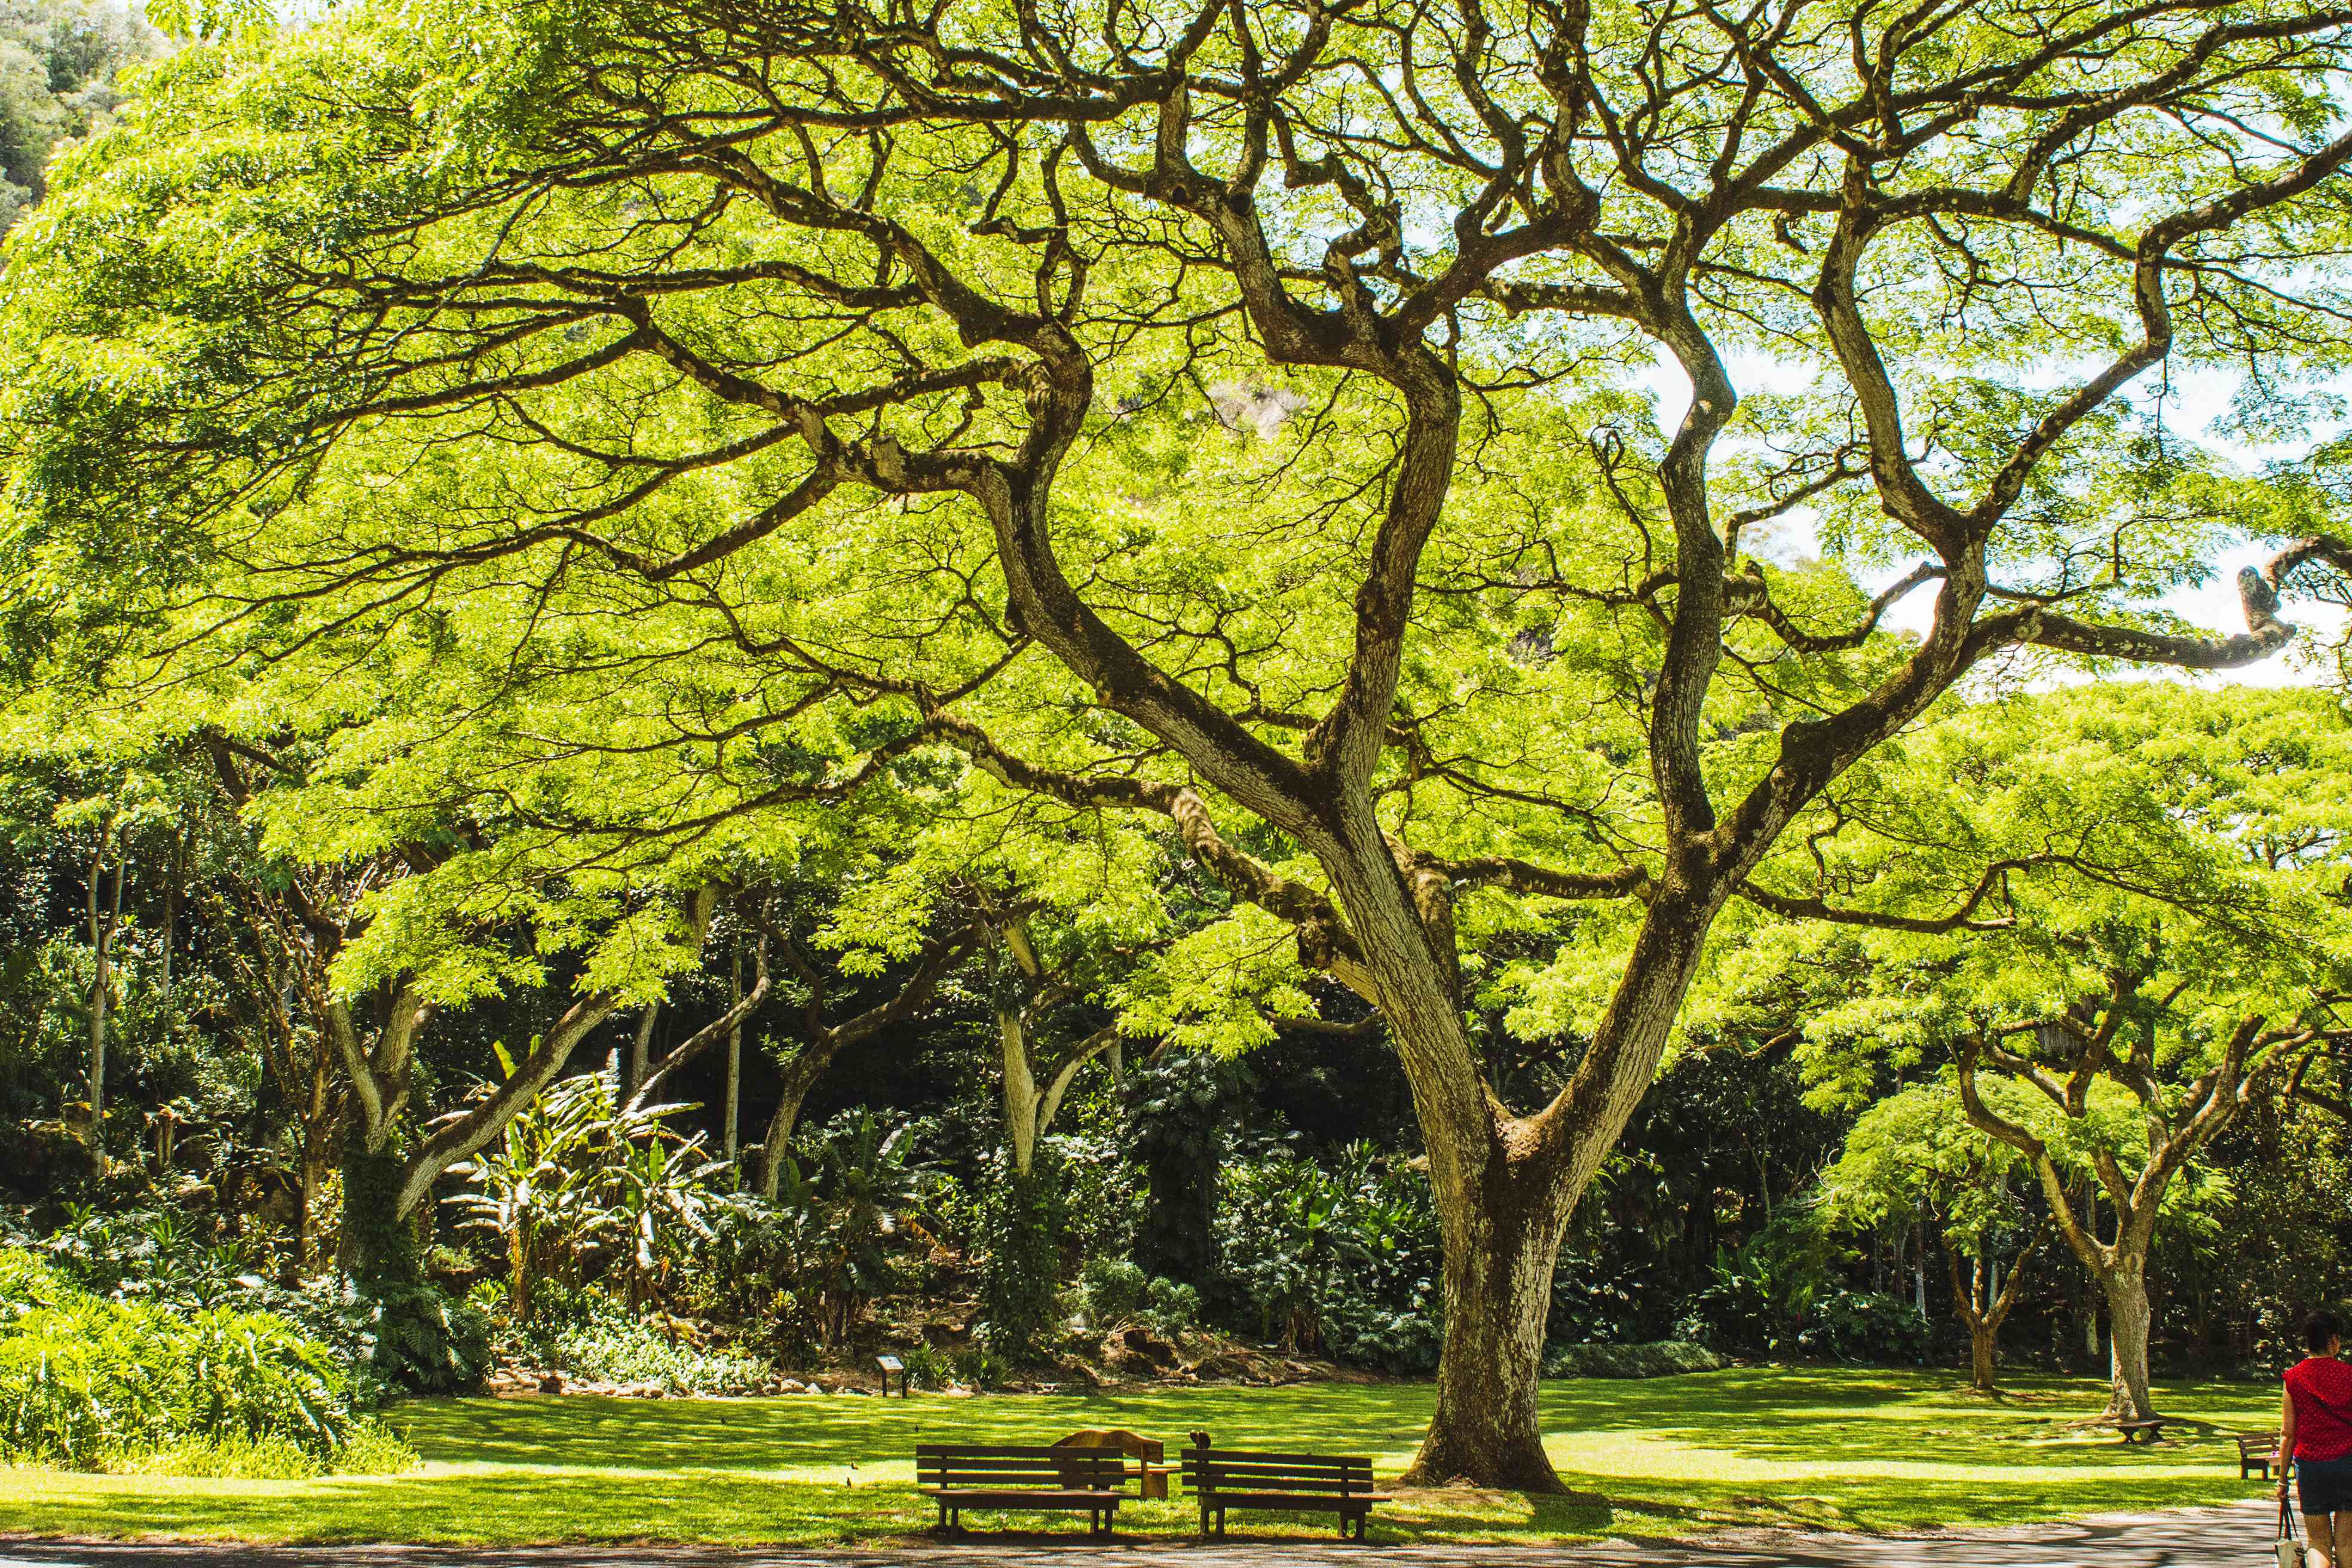 Benches under large green tree in Waimea Valley